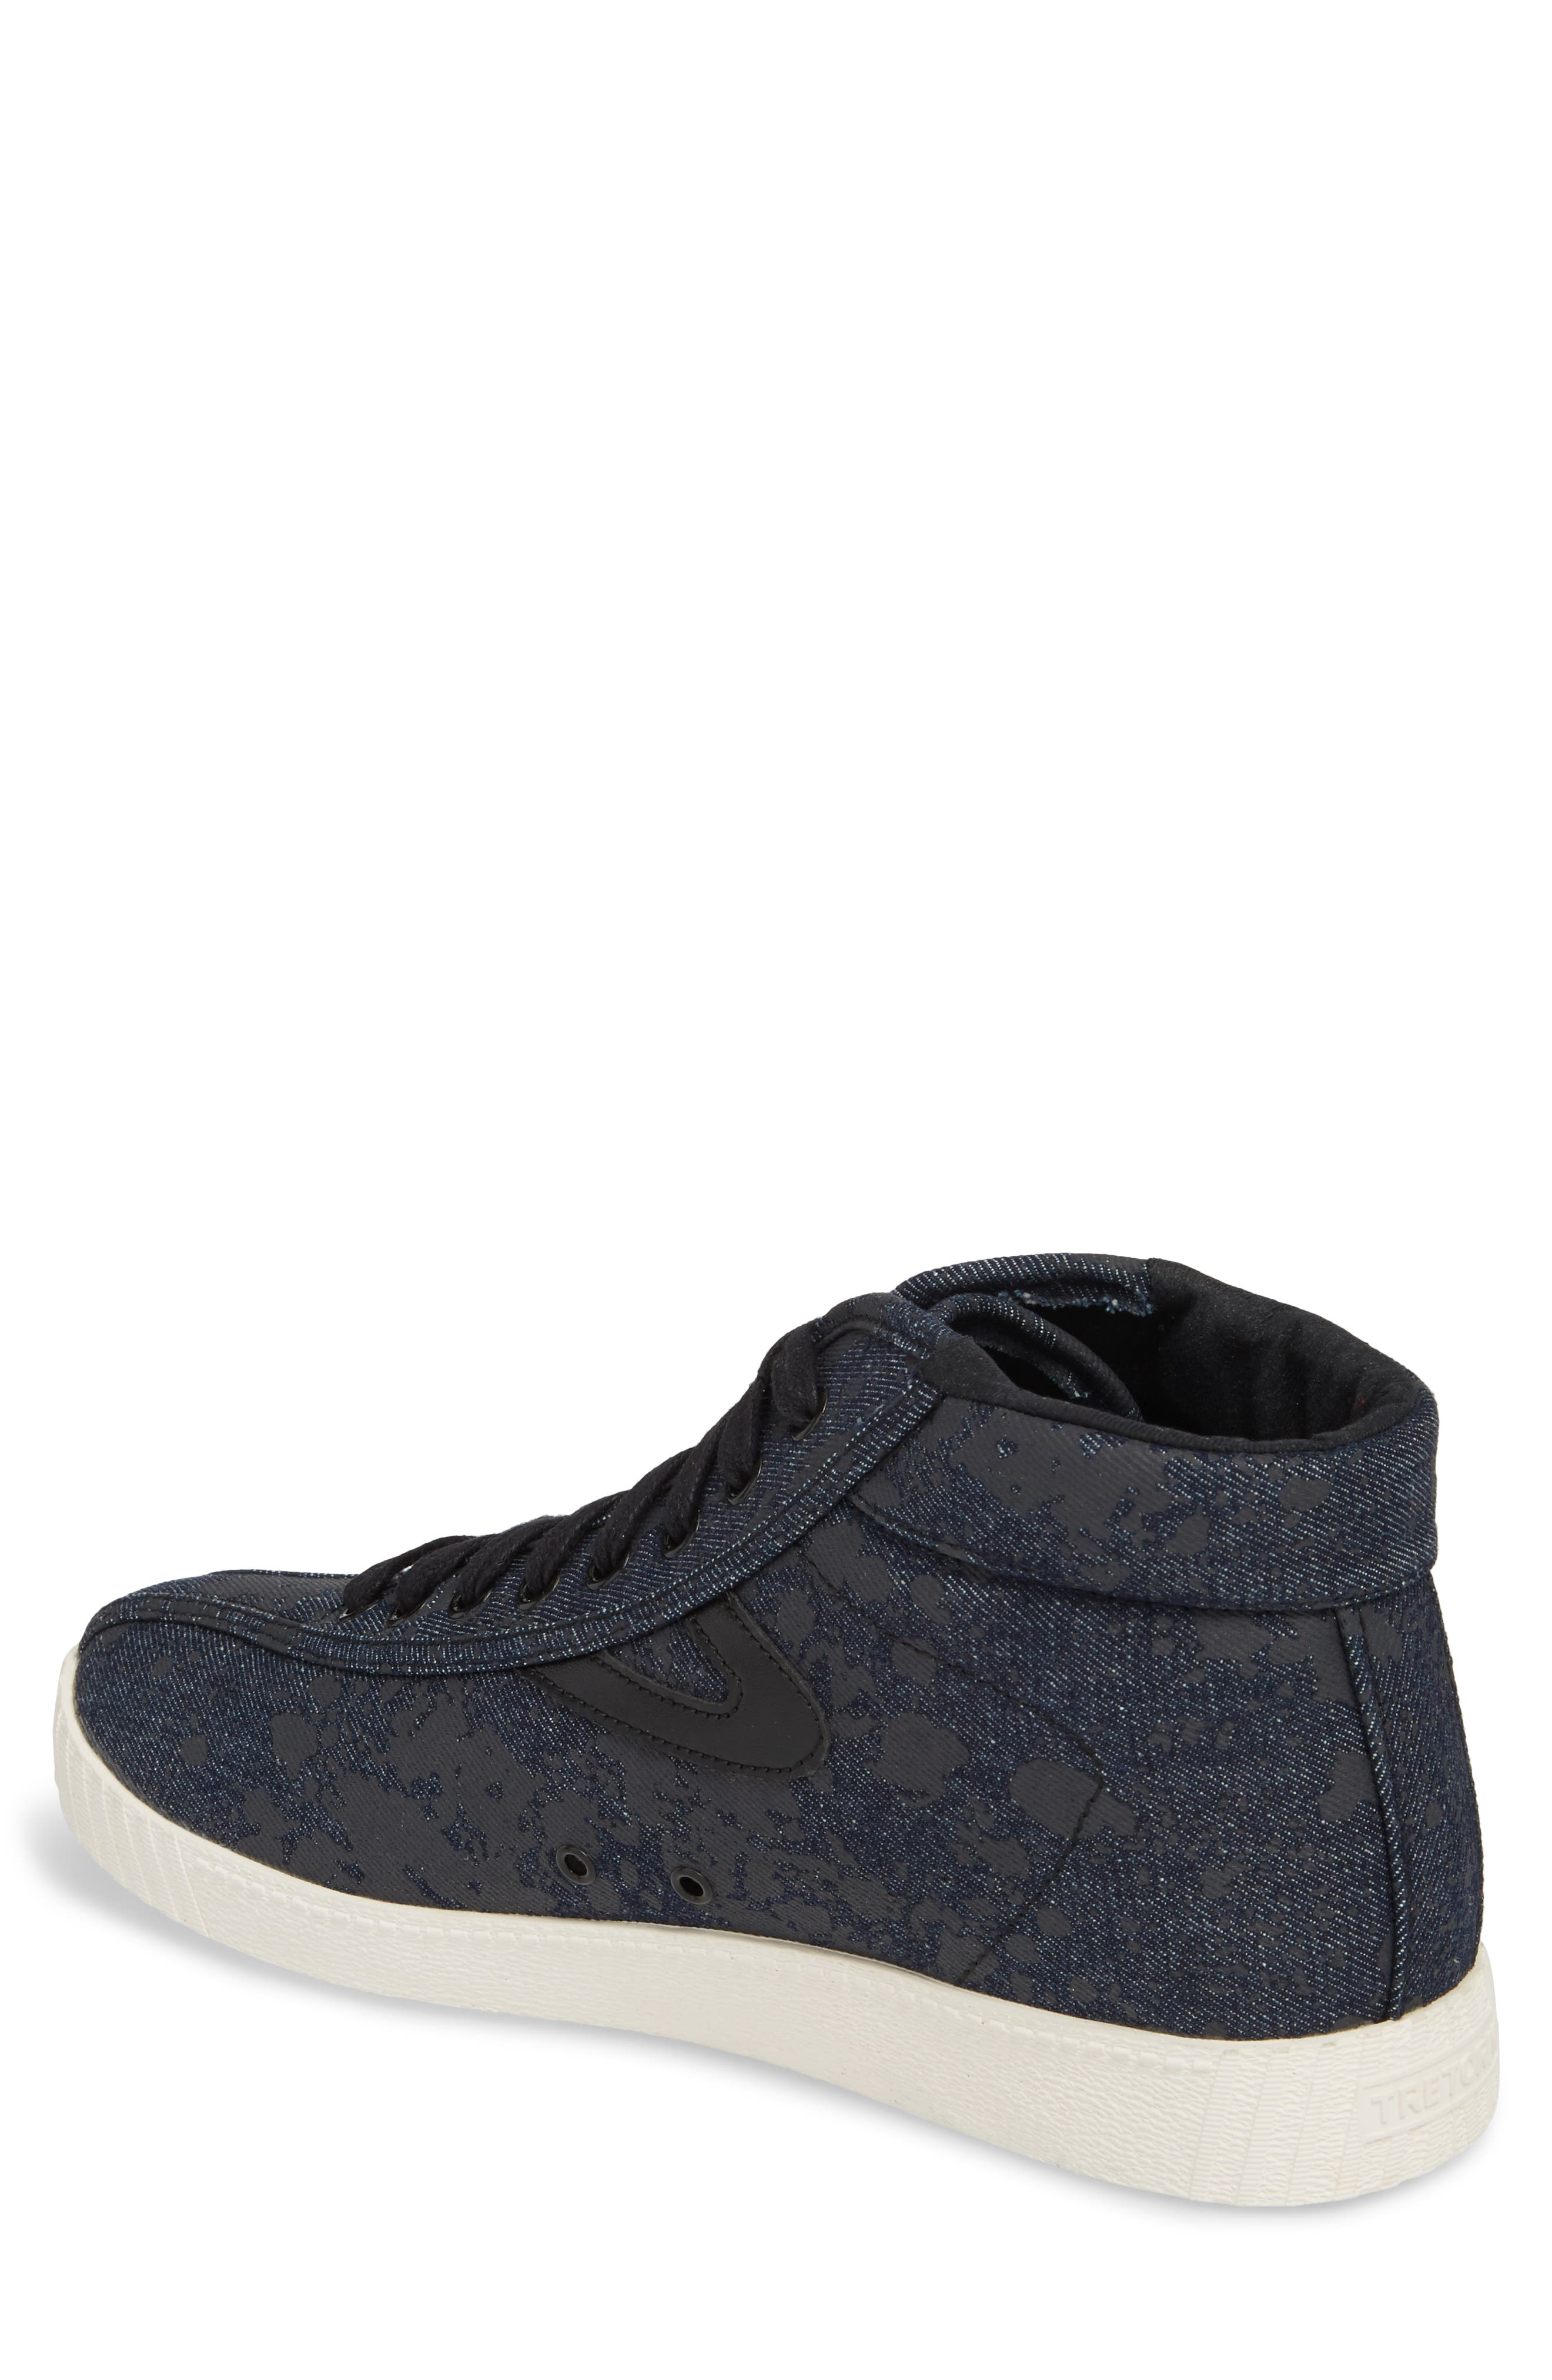 Nylite High Top Sneaker,                             Alternate thumbnail 2, color,                             001